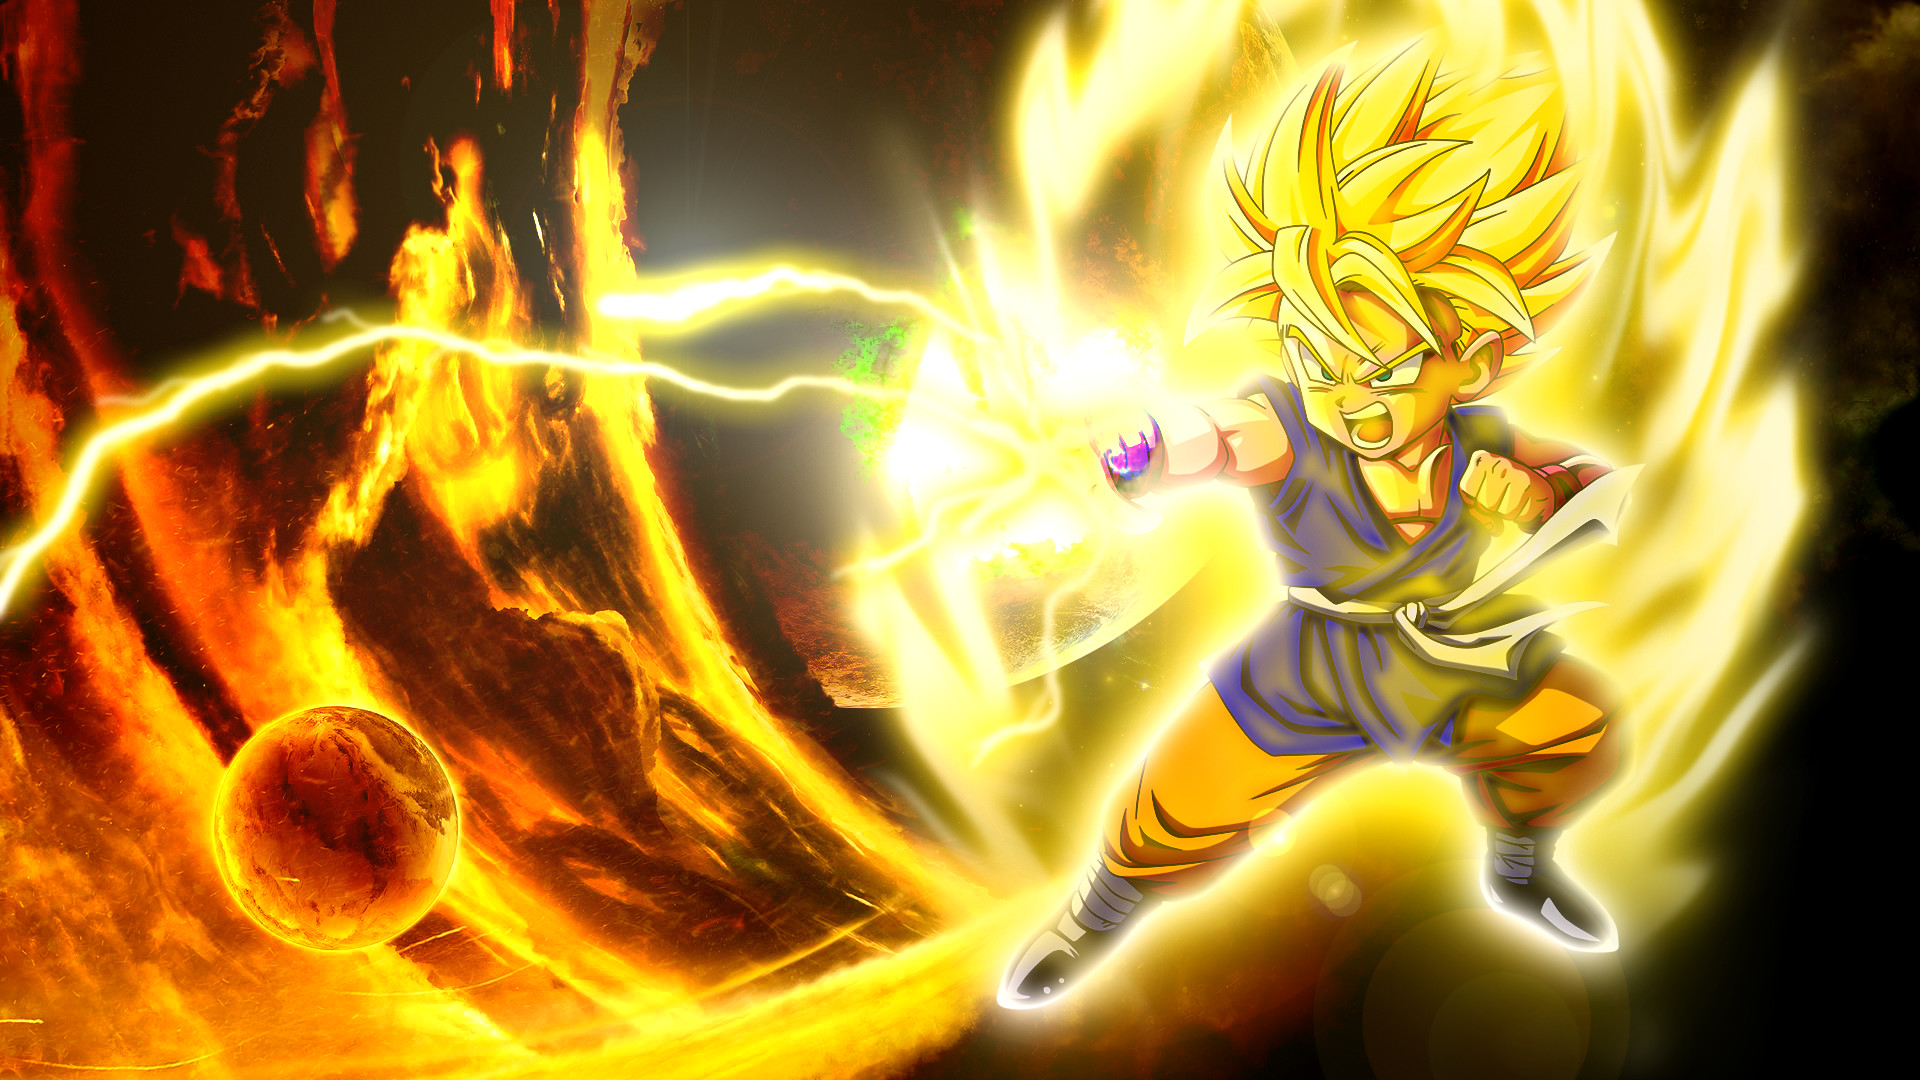 Dragon Ball Z Live Wallpapers (67+ Images